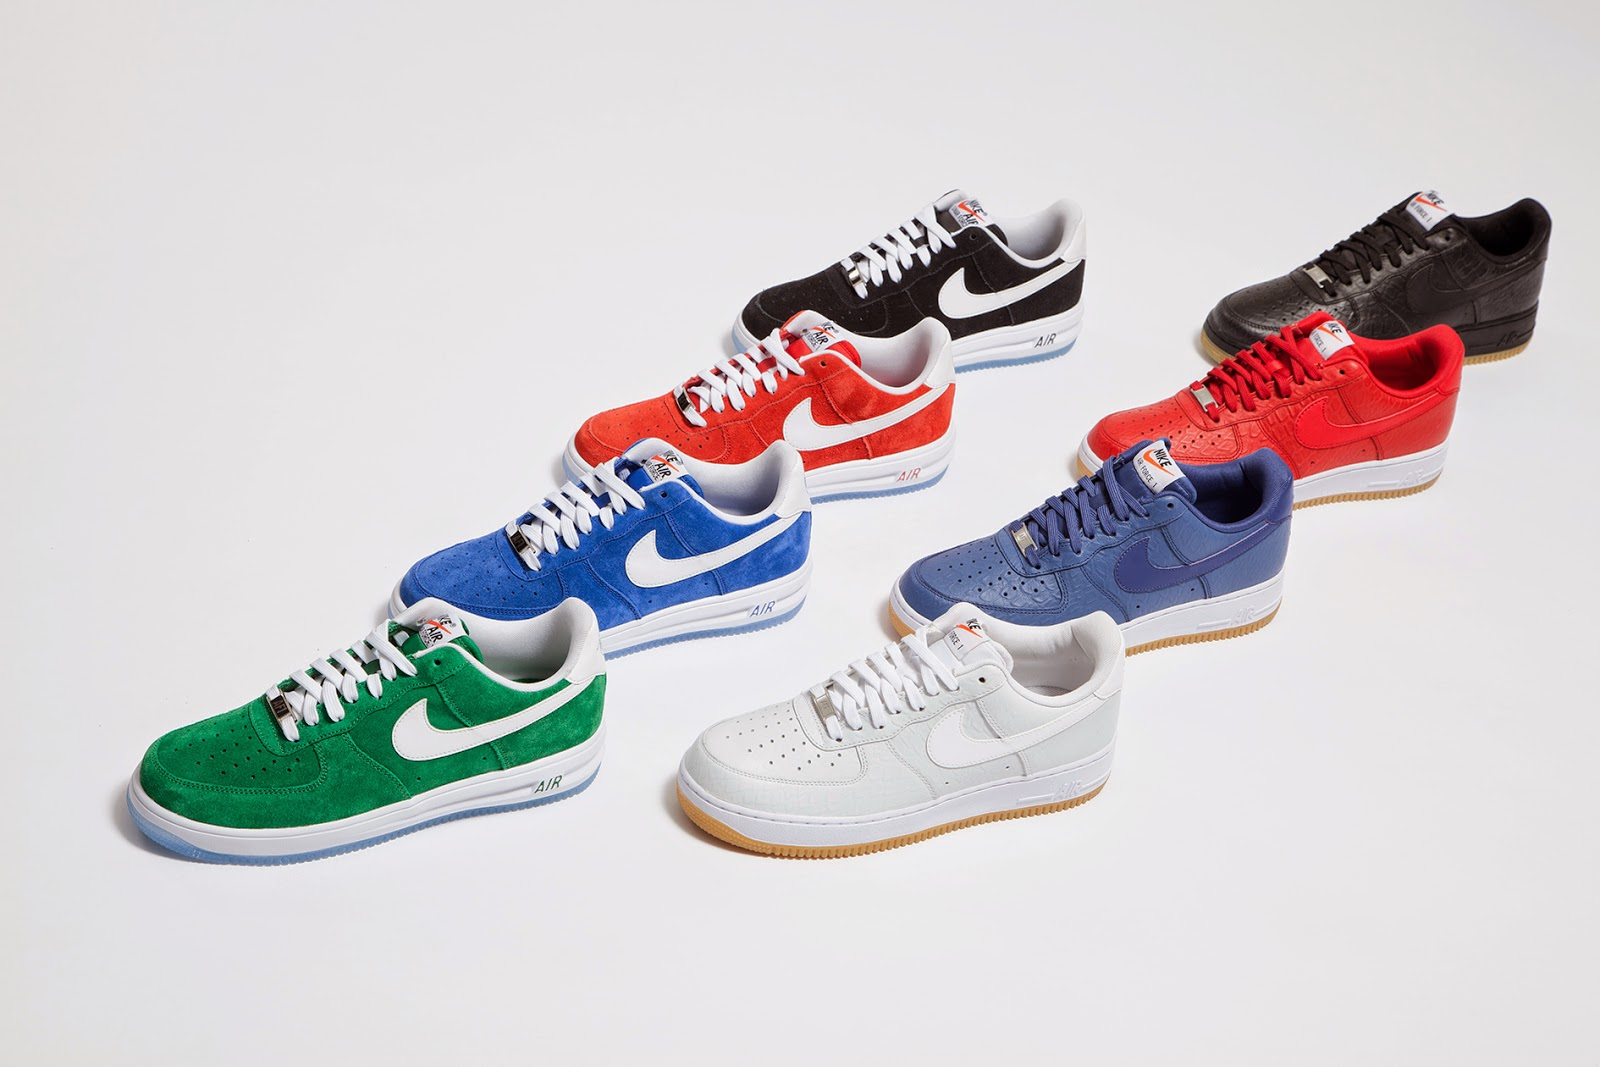 PARDON ME, ARE YOU BALLIN'? - FOOT LOCKER NIKE COLLECTION